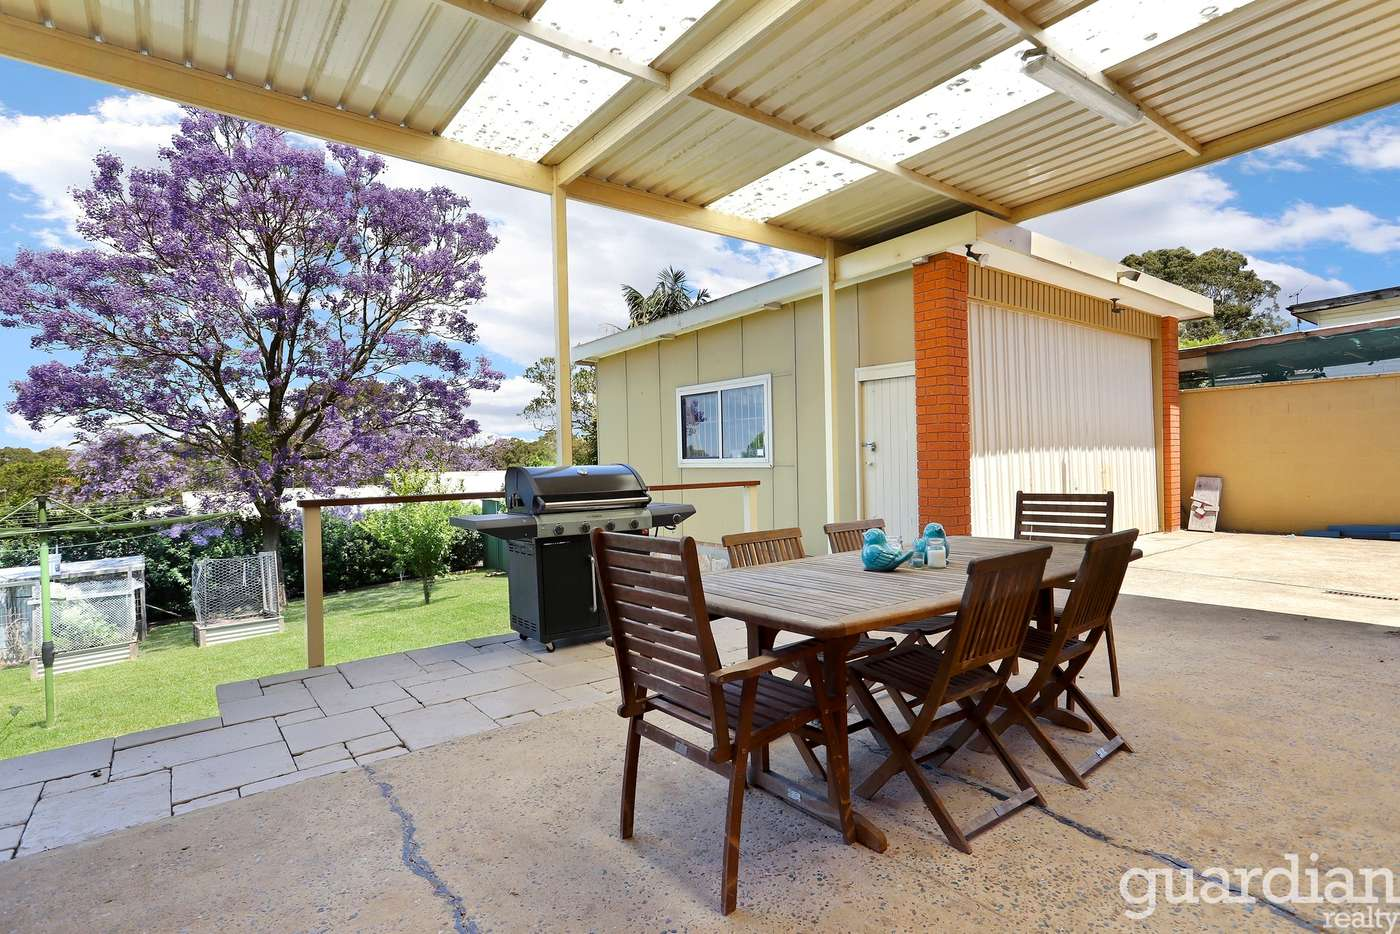 Fifth view of Homely house listing, 26 Cross Street, Baulkham Hills NSW 2153